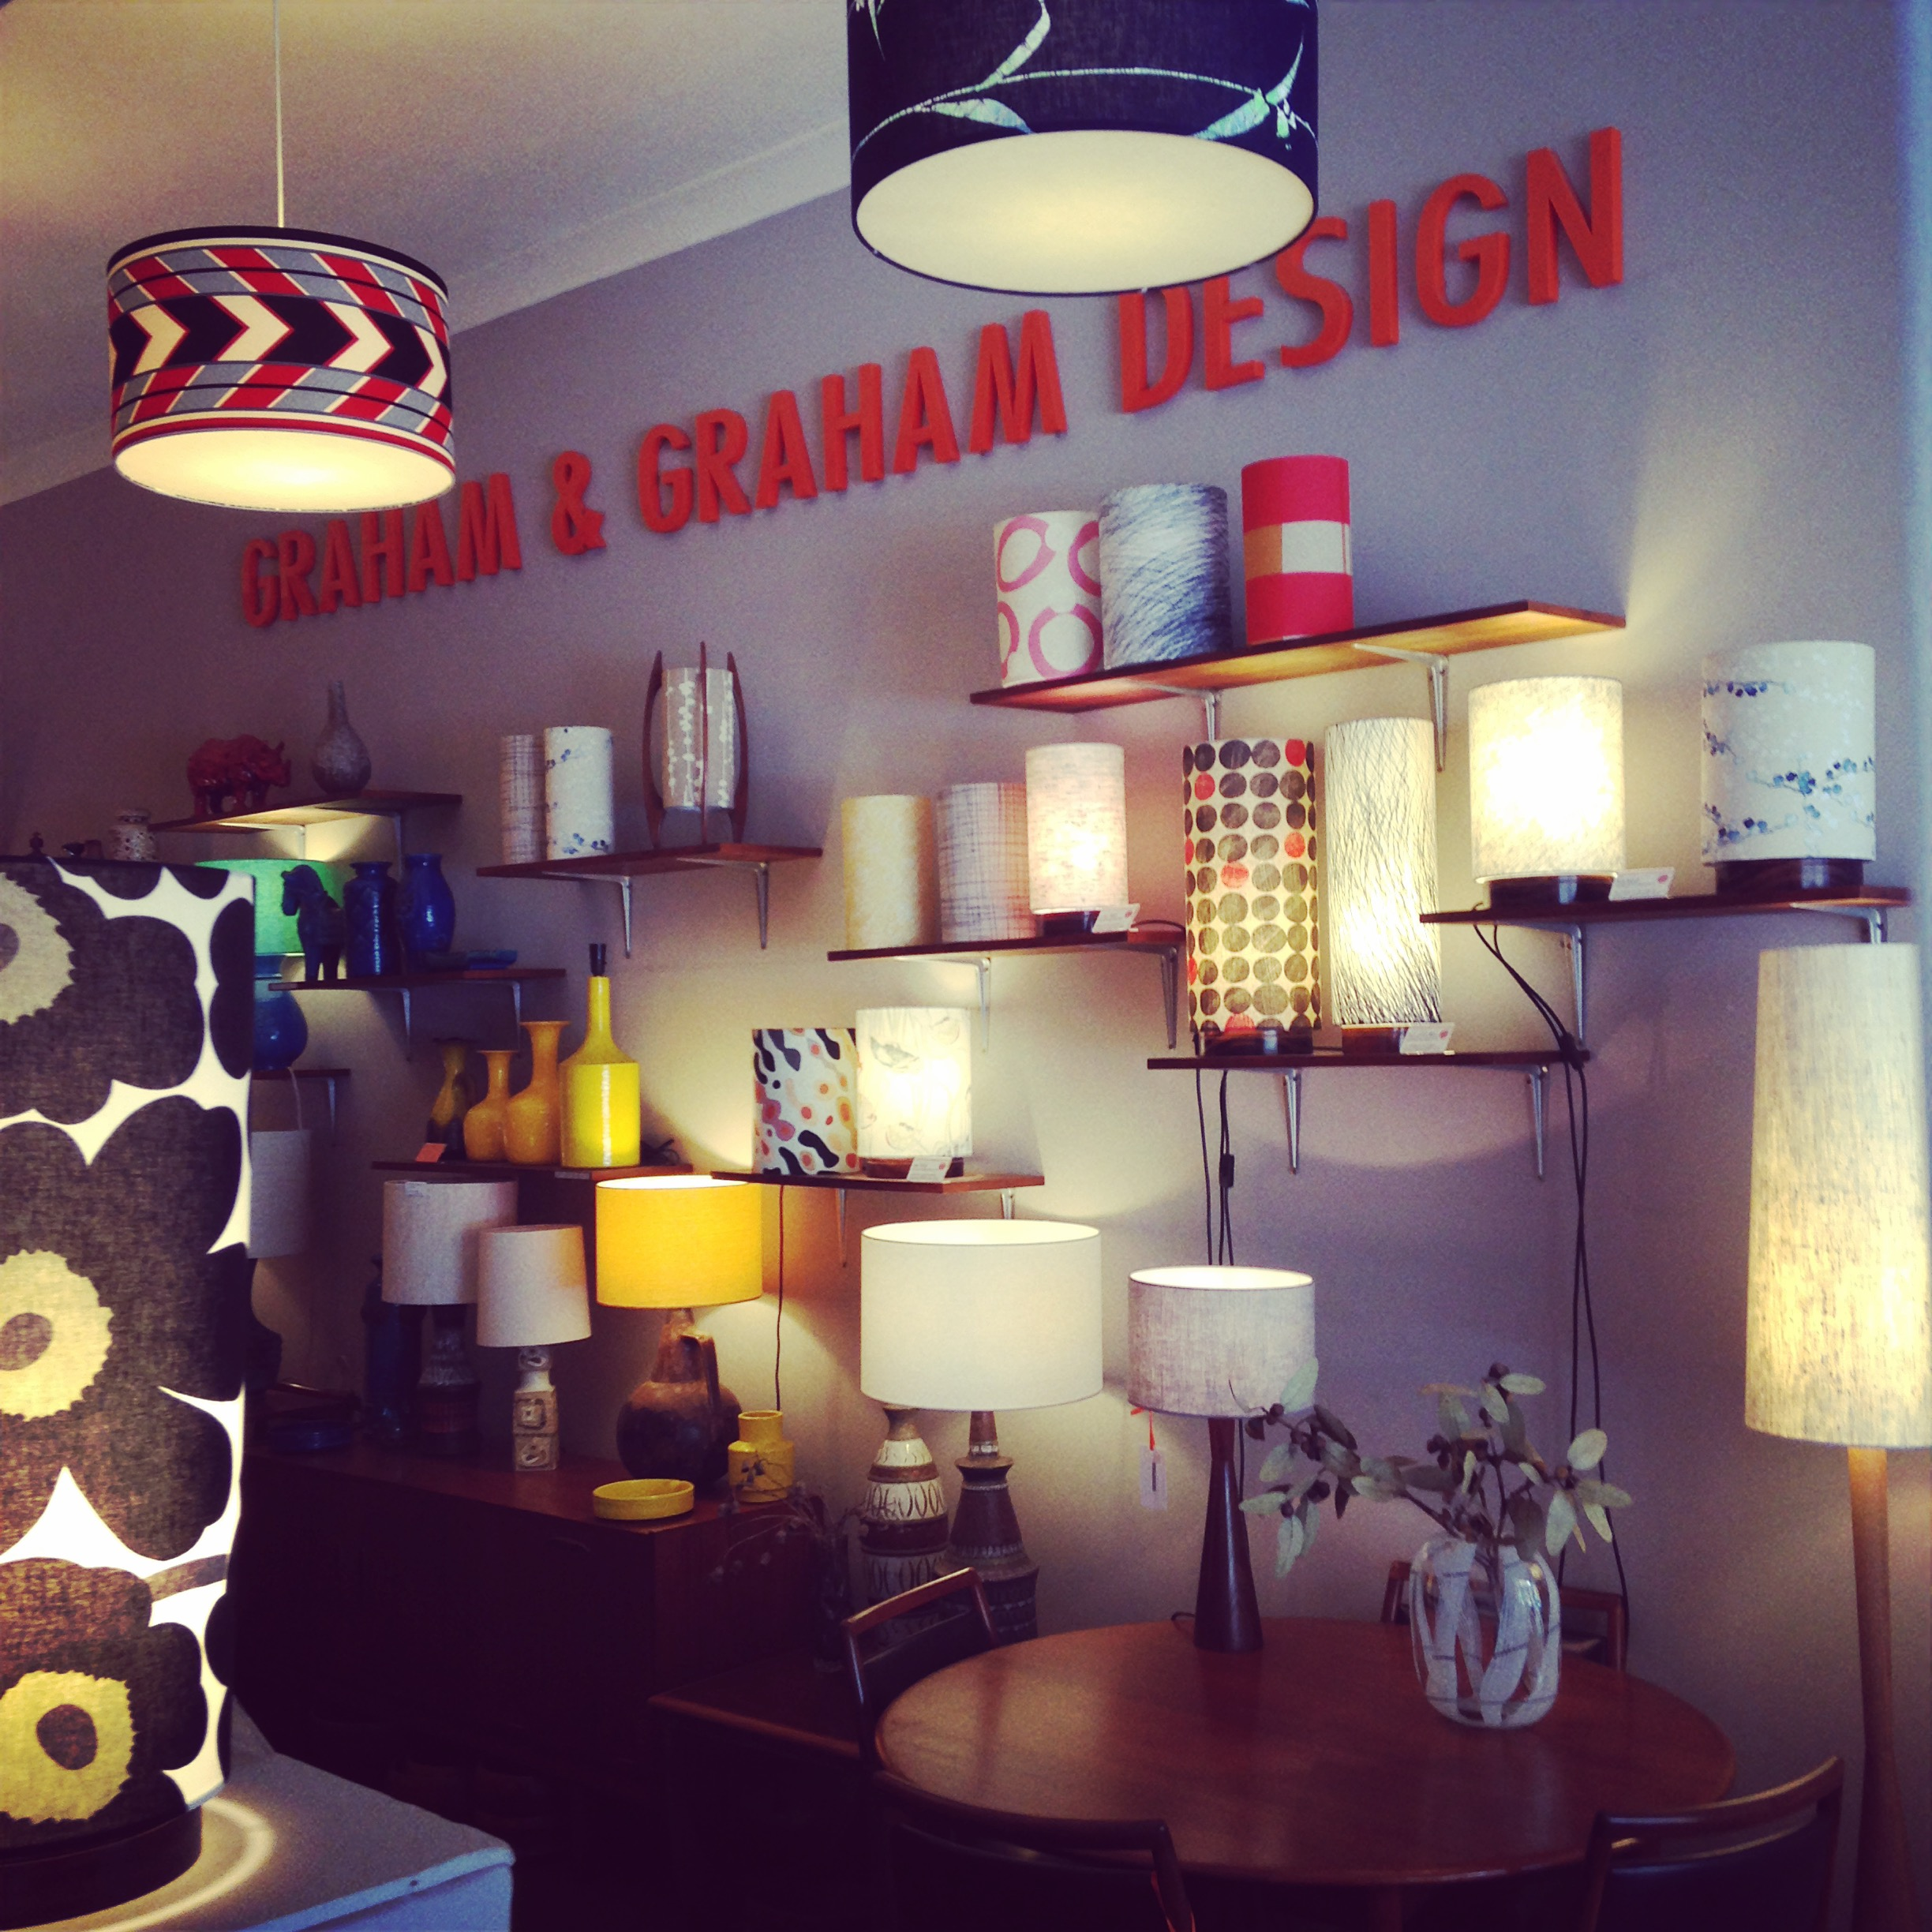 Lighting Shops Brisbane Graham Graham Design Handmade Lampshades Lighting Sydney